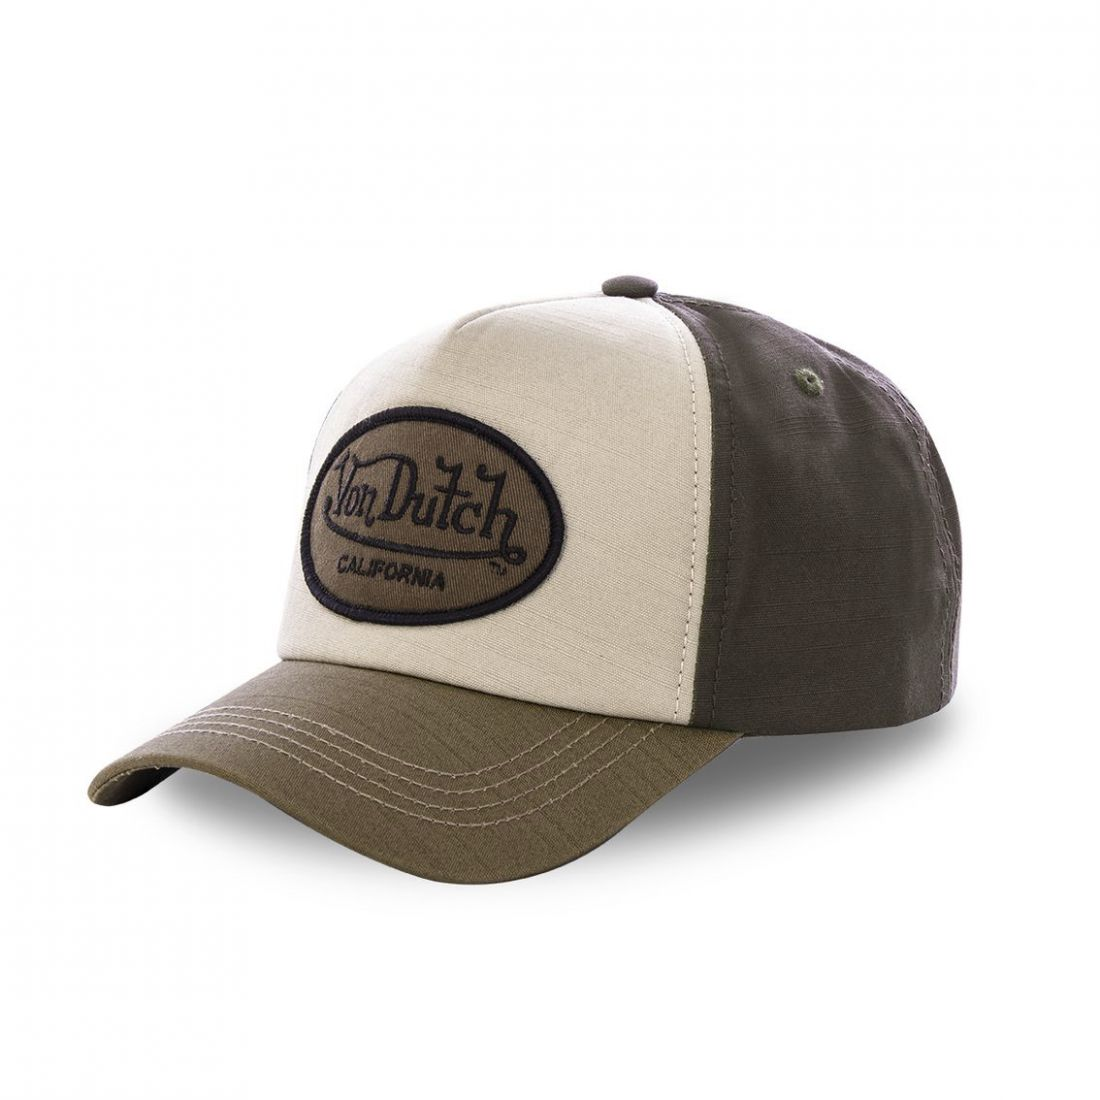 Casquette baseball Von Dutch Jacks Marron Ecusson Marron